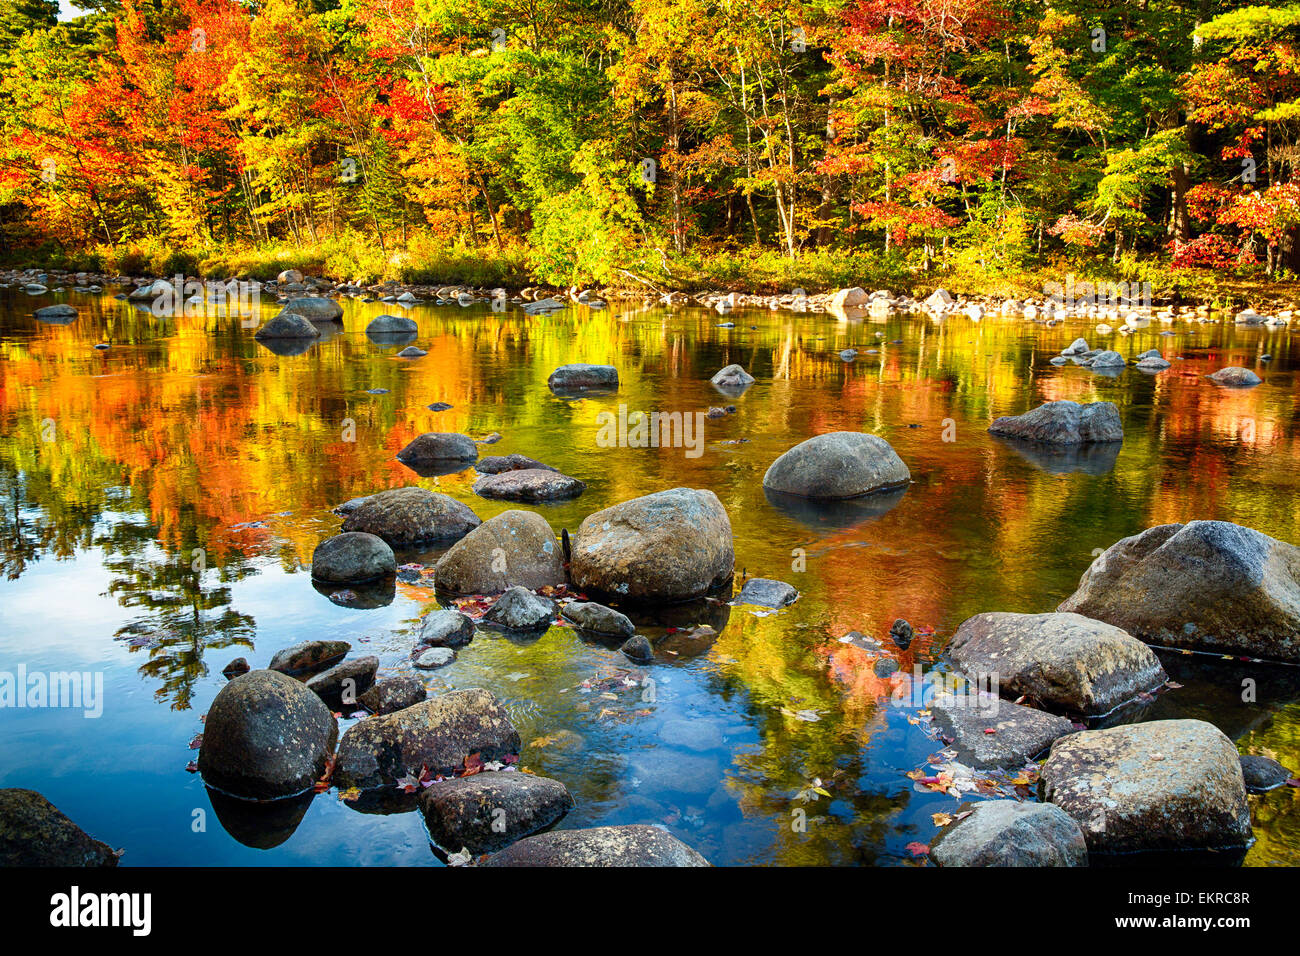 View of a River with Rocks and Colorful Foliage Reflections, Swift River, White Mountains National Forest, New Hampshire - Stock Image